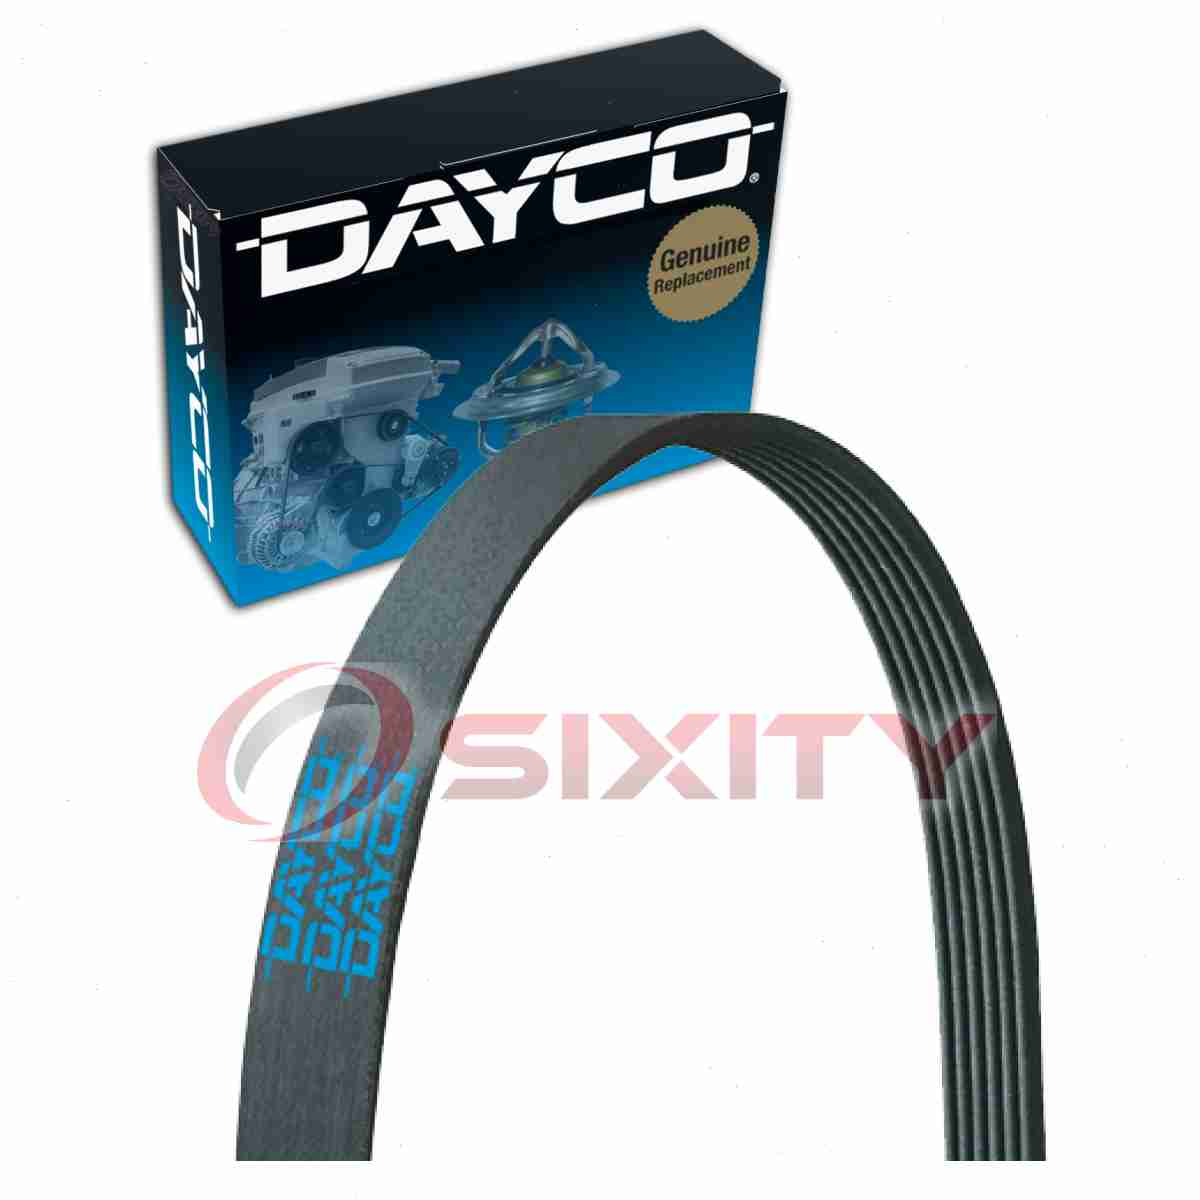 Dayco Serpentine Belt For 2002 2005 Buick Rendezvous 34l V6 V Cxl Electric Seat Issues Built Passenger Cars And Light Duty Trucks The Extensive Line Of Poly Rib Belts Are Engineered High Mileage Demanding Drives